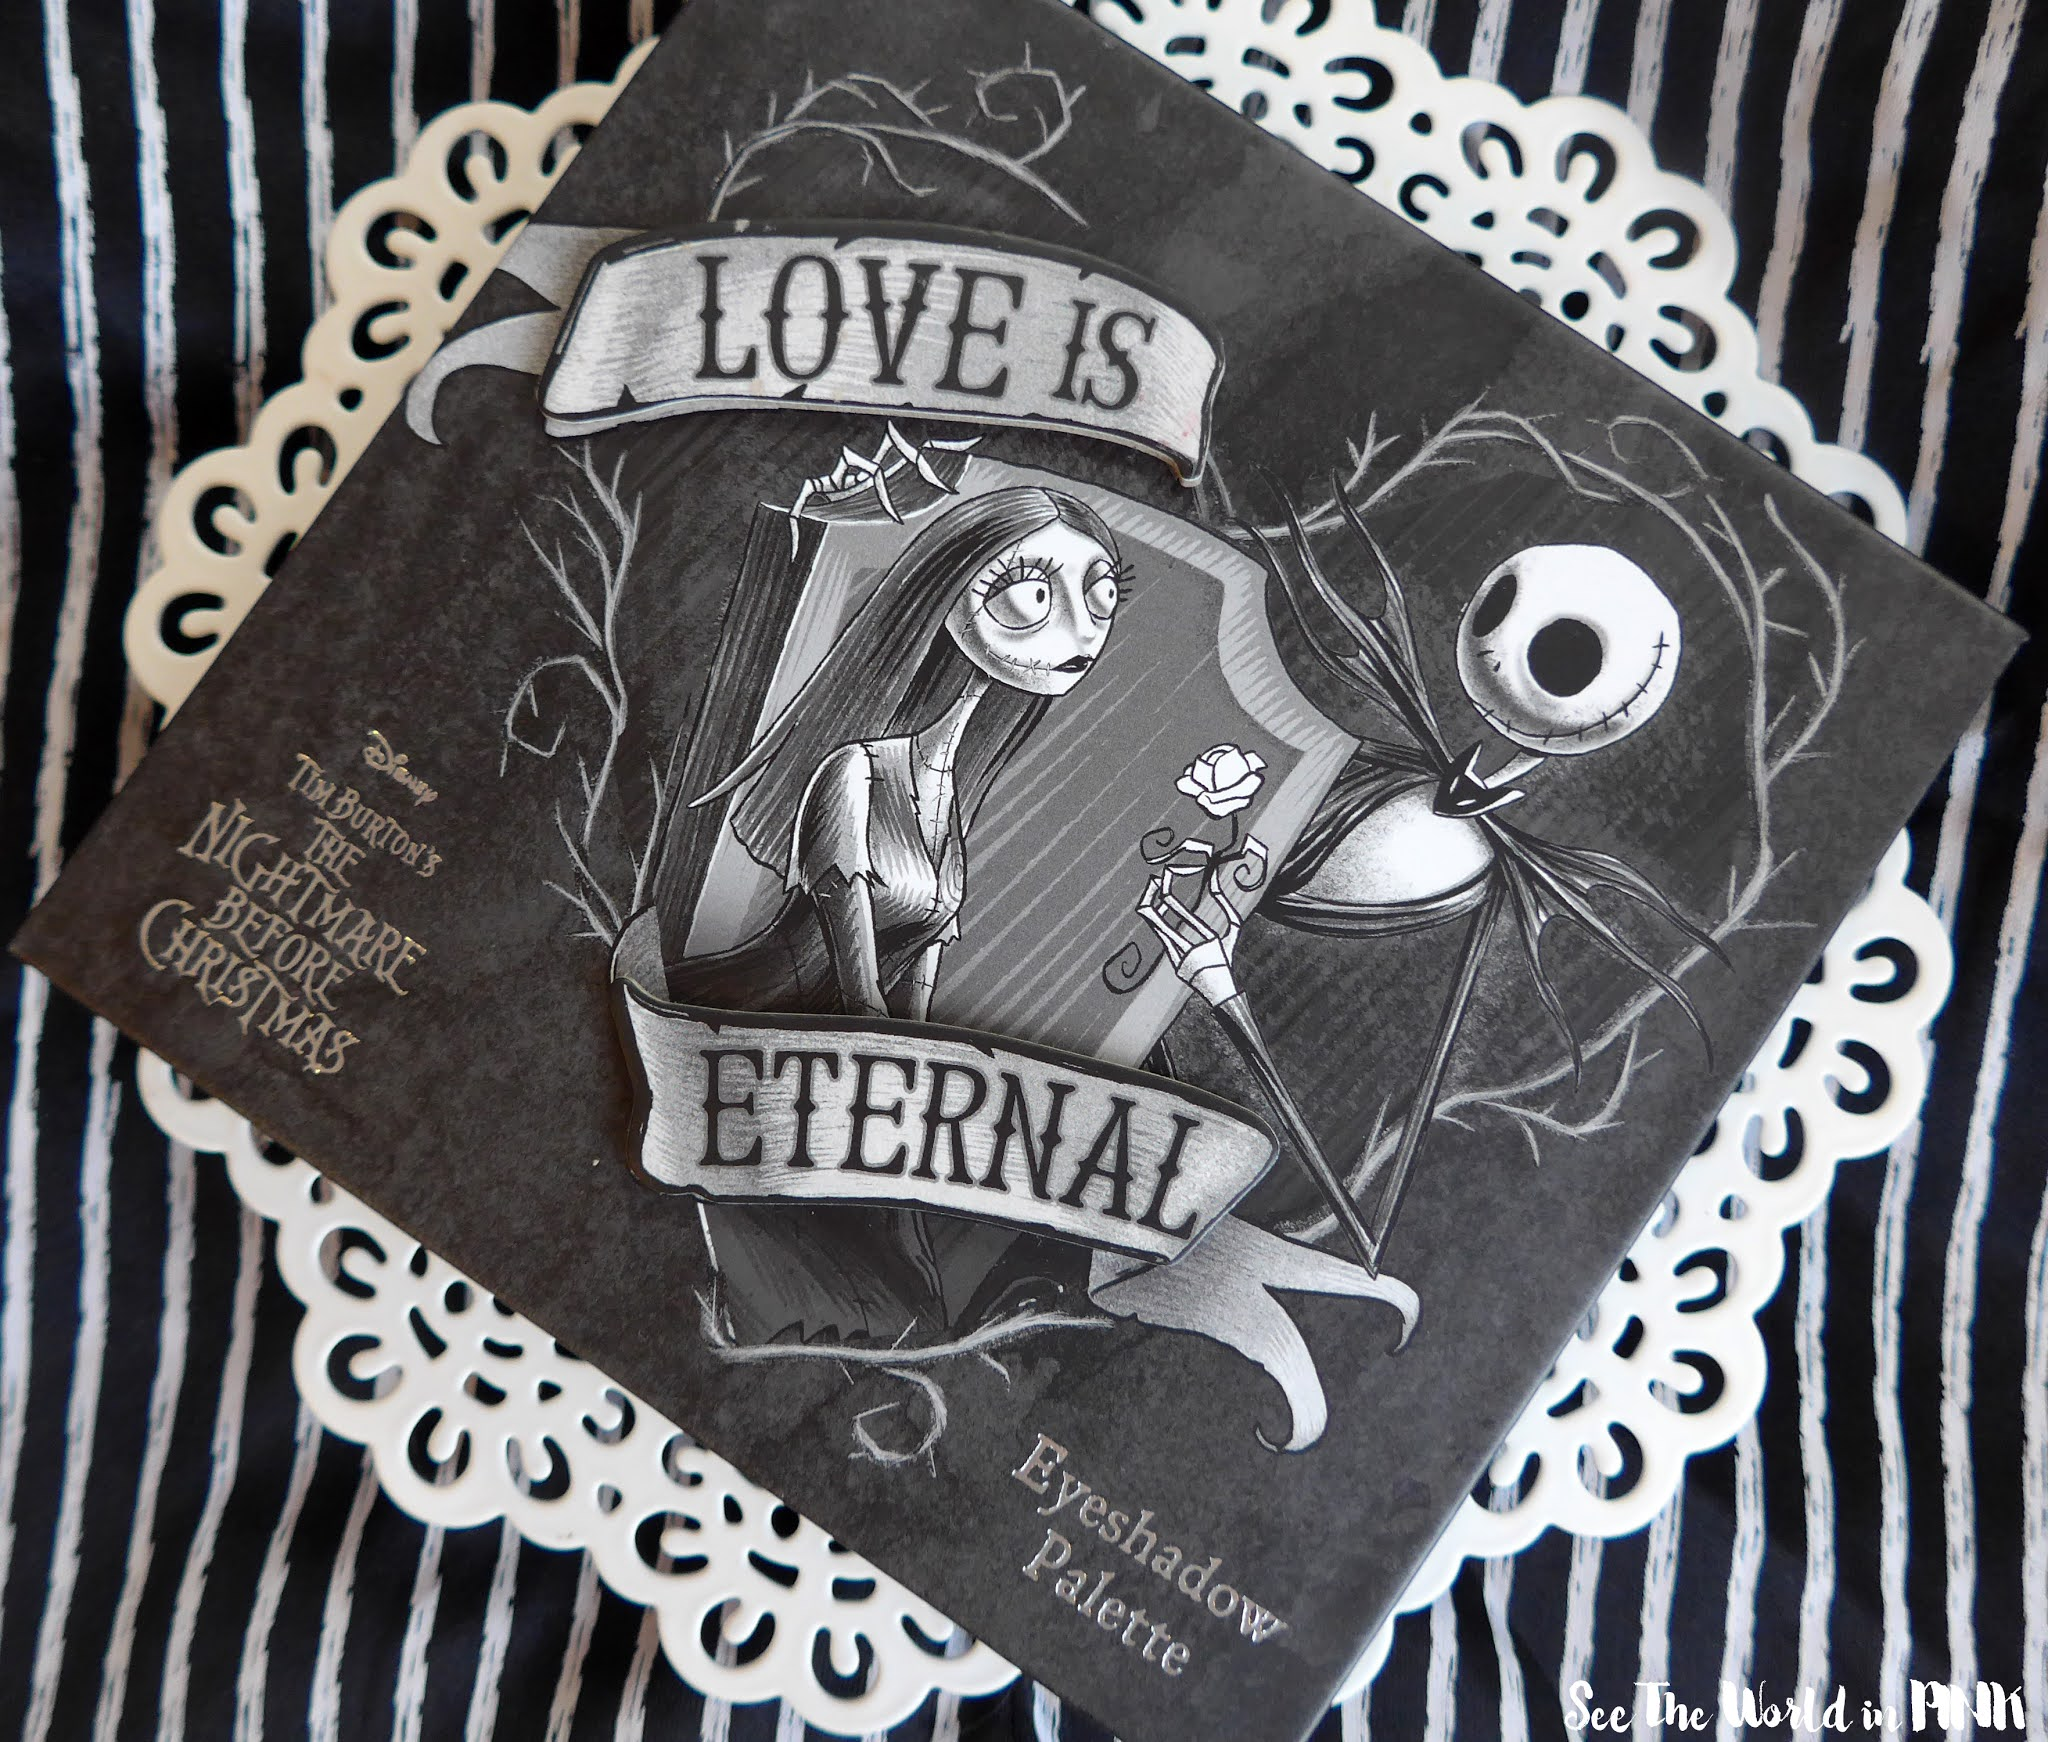 Hot Topic The Nightmare Before Christmas Love Is Eternal Eyeshadow Palette